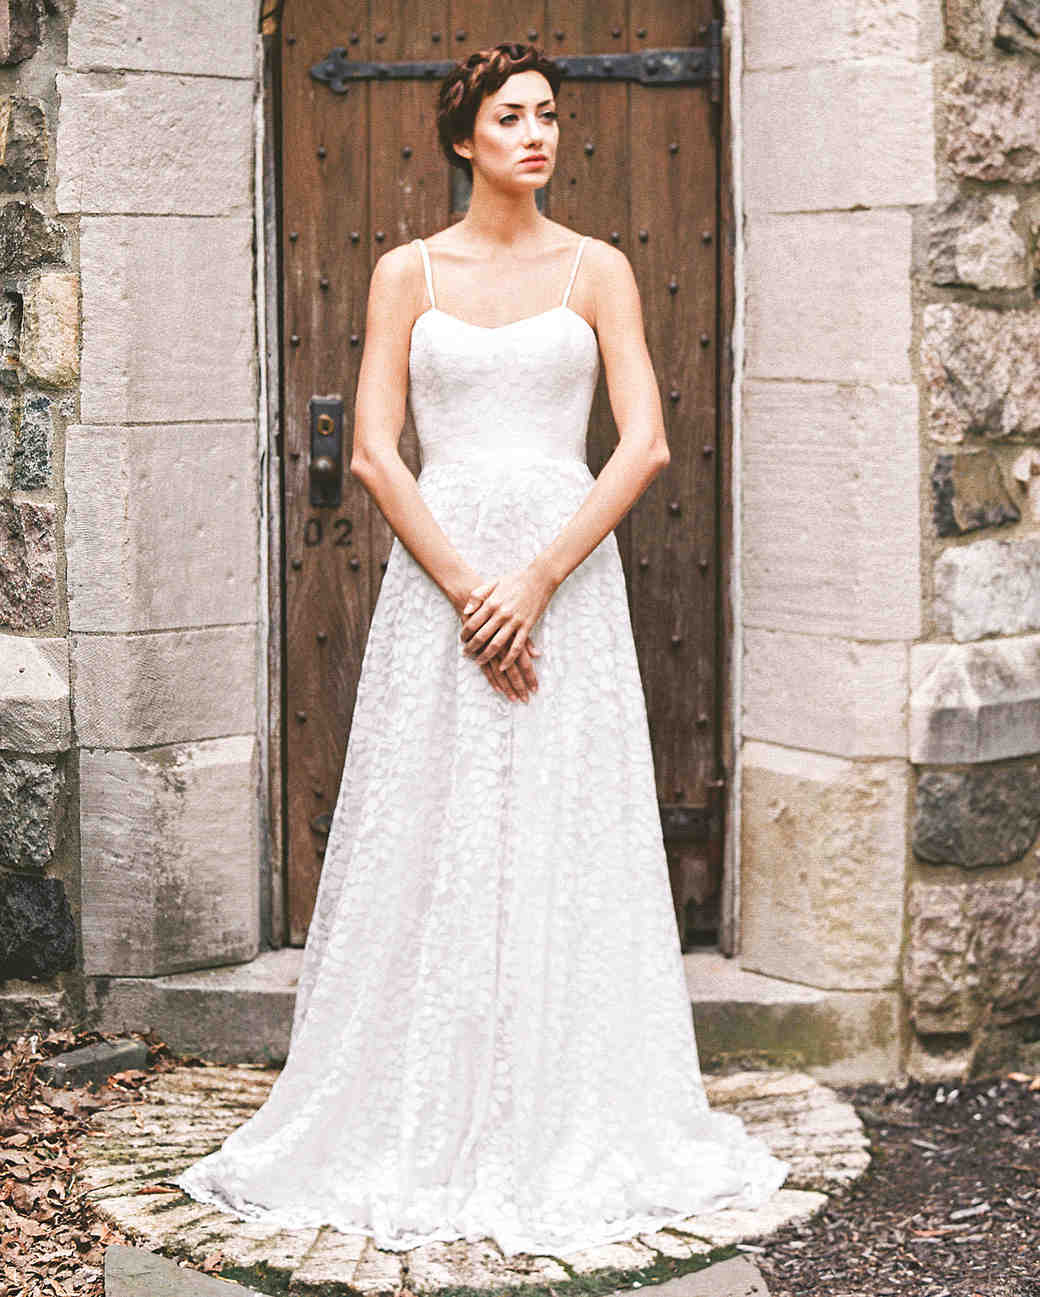 50-states-wedding-dresses-hawaii-sareh-nouri-fall2015-0253-021-0615.jpg